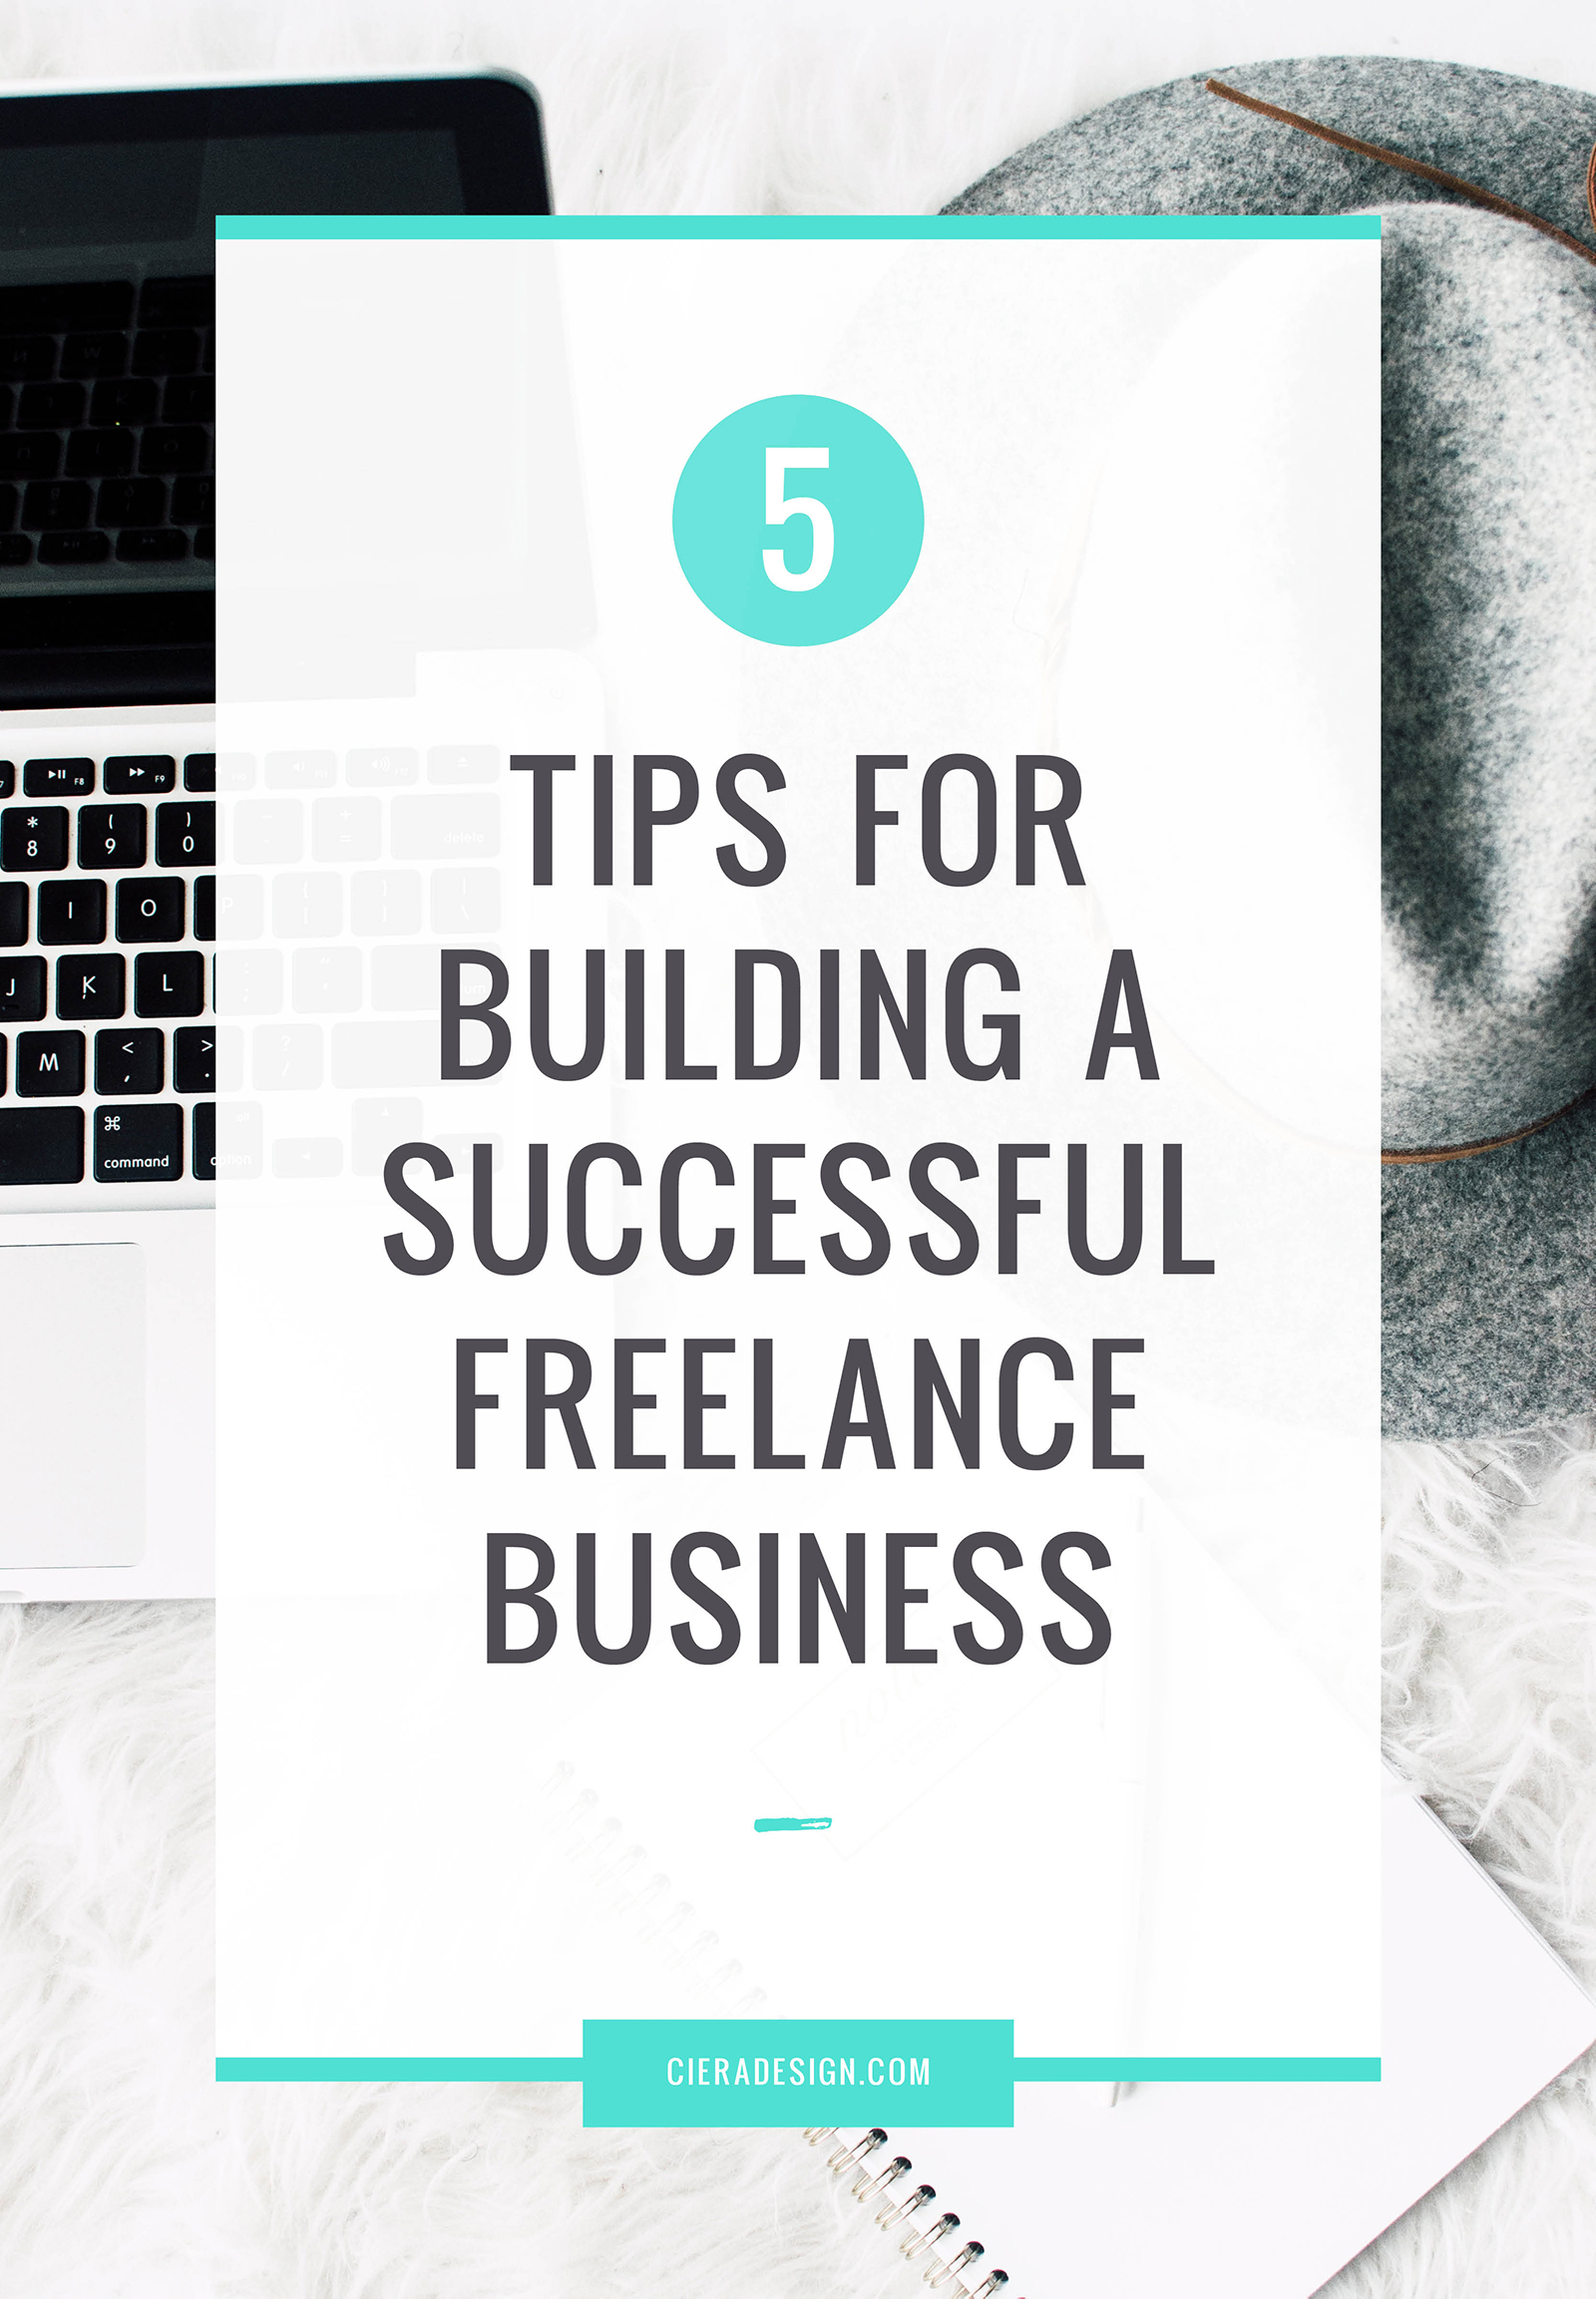 5 Tips for Building a Successful Freelance Business - Looking back on 5 years of freelancing.